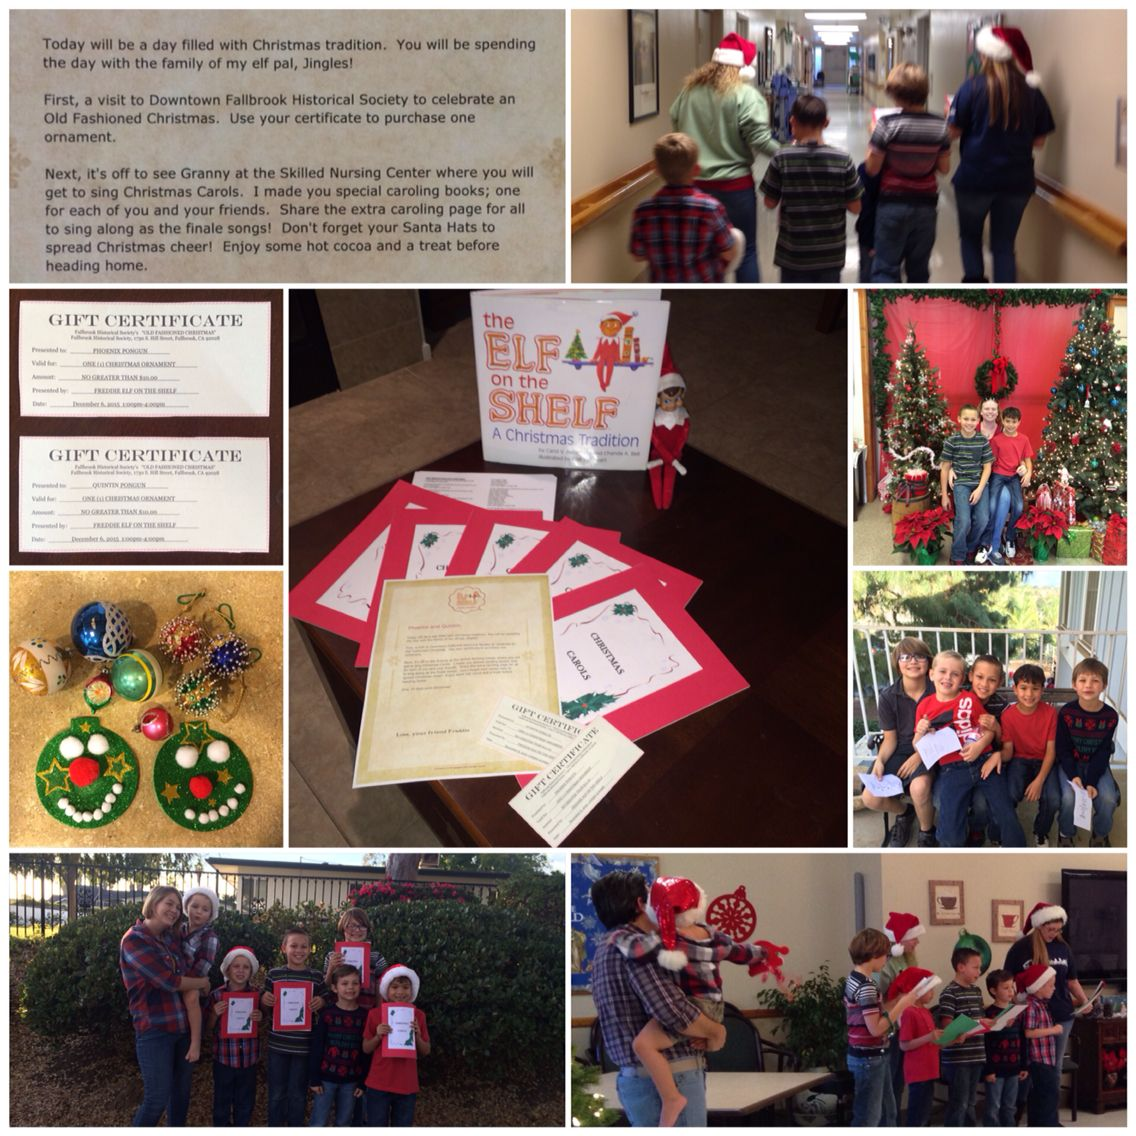 Elf on the Shelf Day 6: A day filled with Christmas Tradition, shared with friends. First an Old Fashioned Christmas at the Fallbrook Historical Society. Freddie even left the boys GiftCertificates so they could get ornaments of their very own. Then it's was Christmas Caroling at Fallbrook Skilled Nursing Facility, spreading Christmas cheer to all...